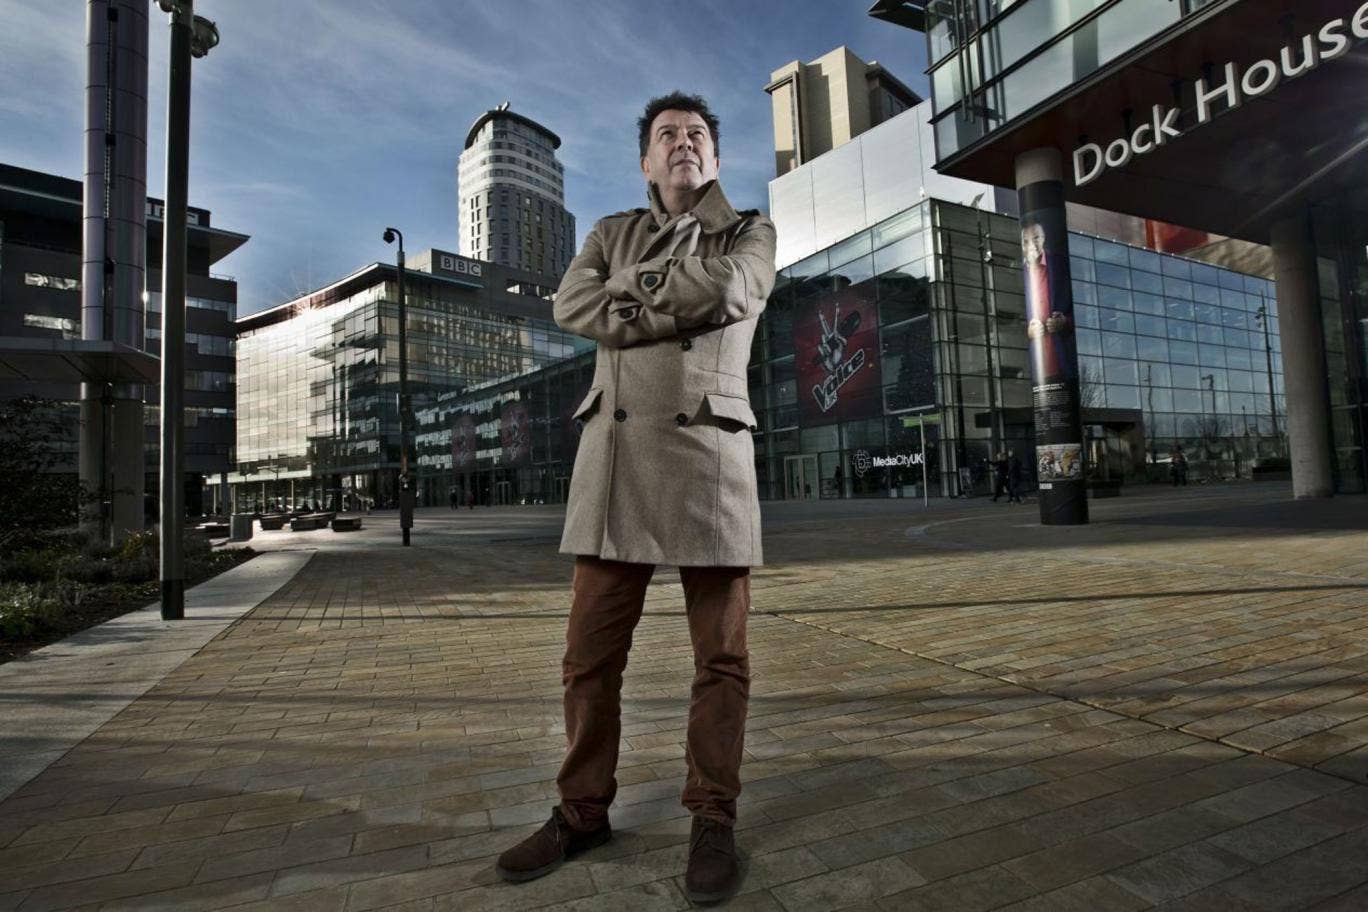 Maconie says: 'Pop has retreated into itself. It would be nice to have people who wrote a little bit about subjects external to themselves'